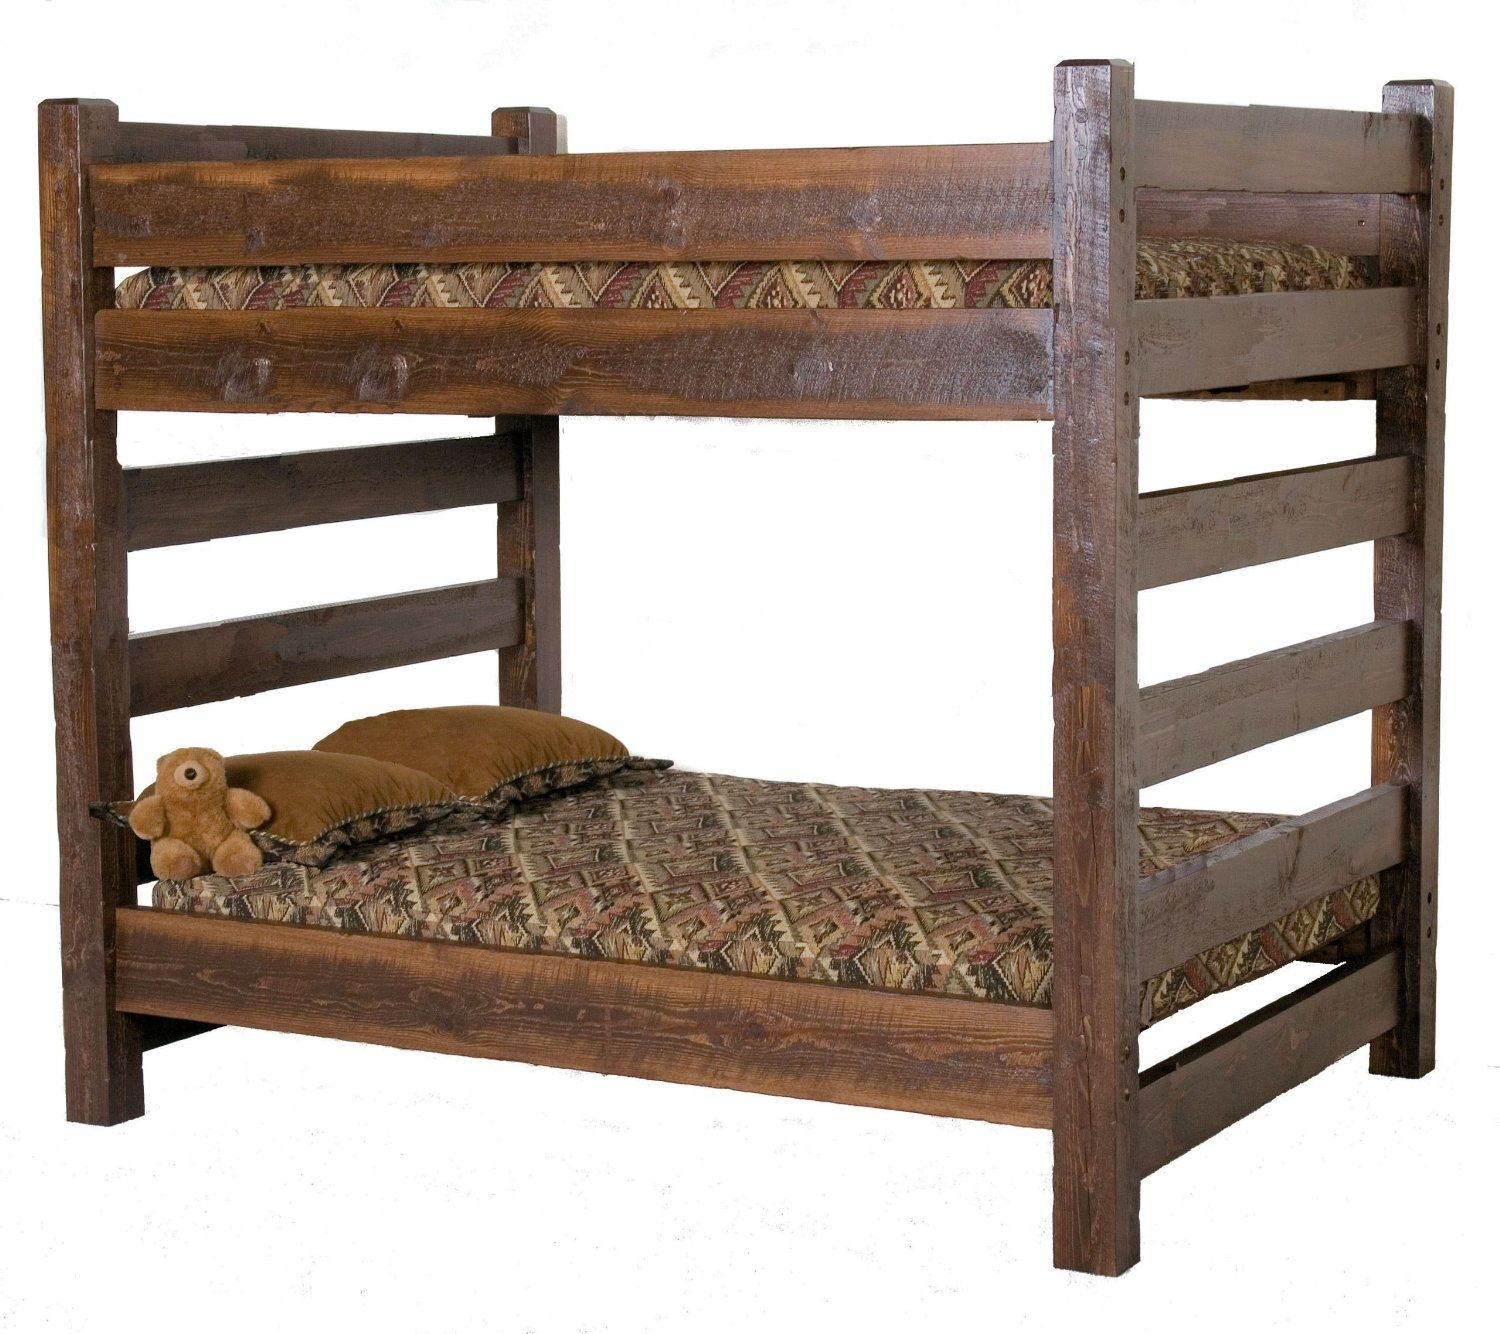 Adorable Queen Size Bunk Beds Design Ideas